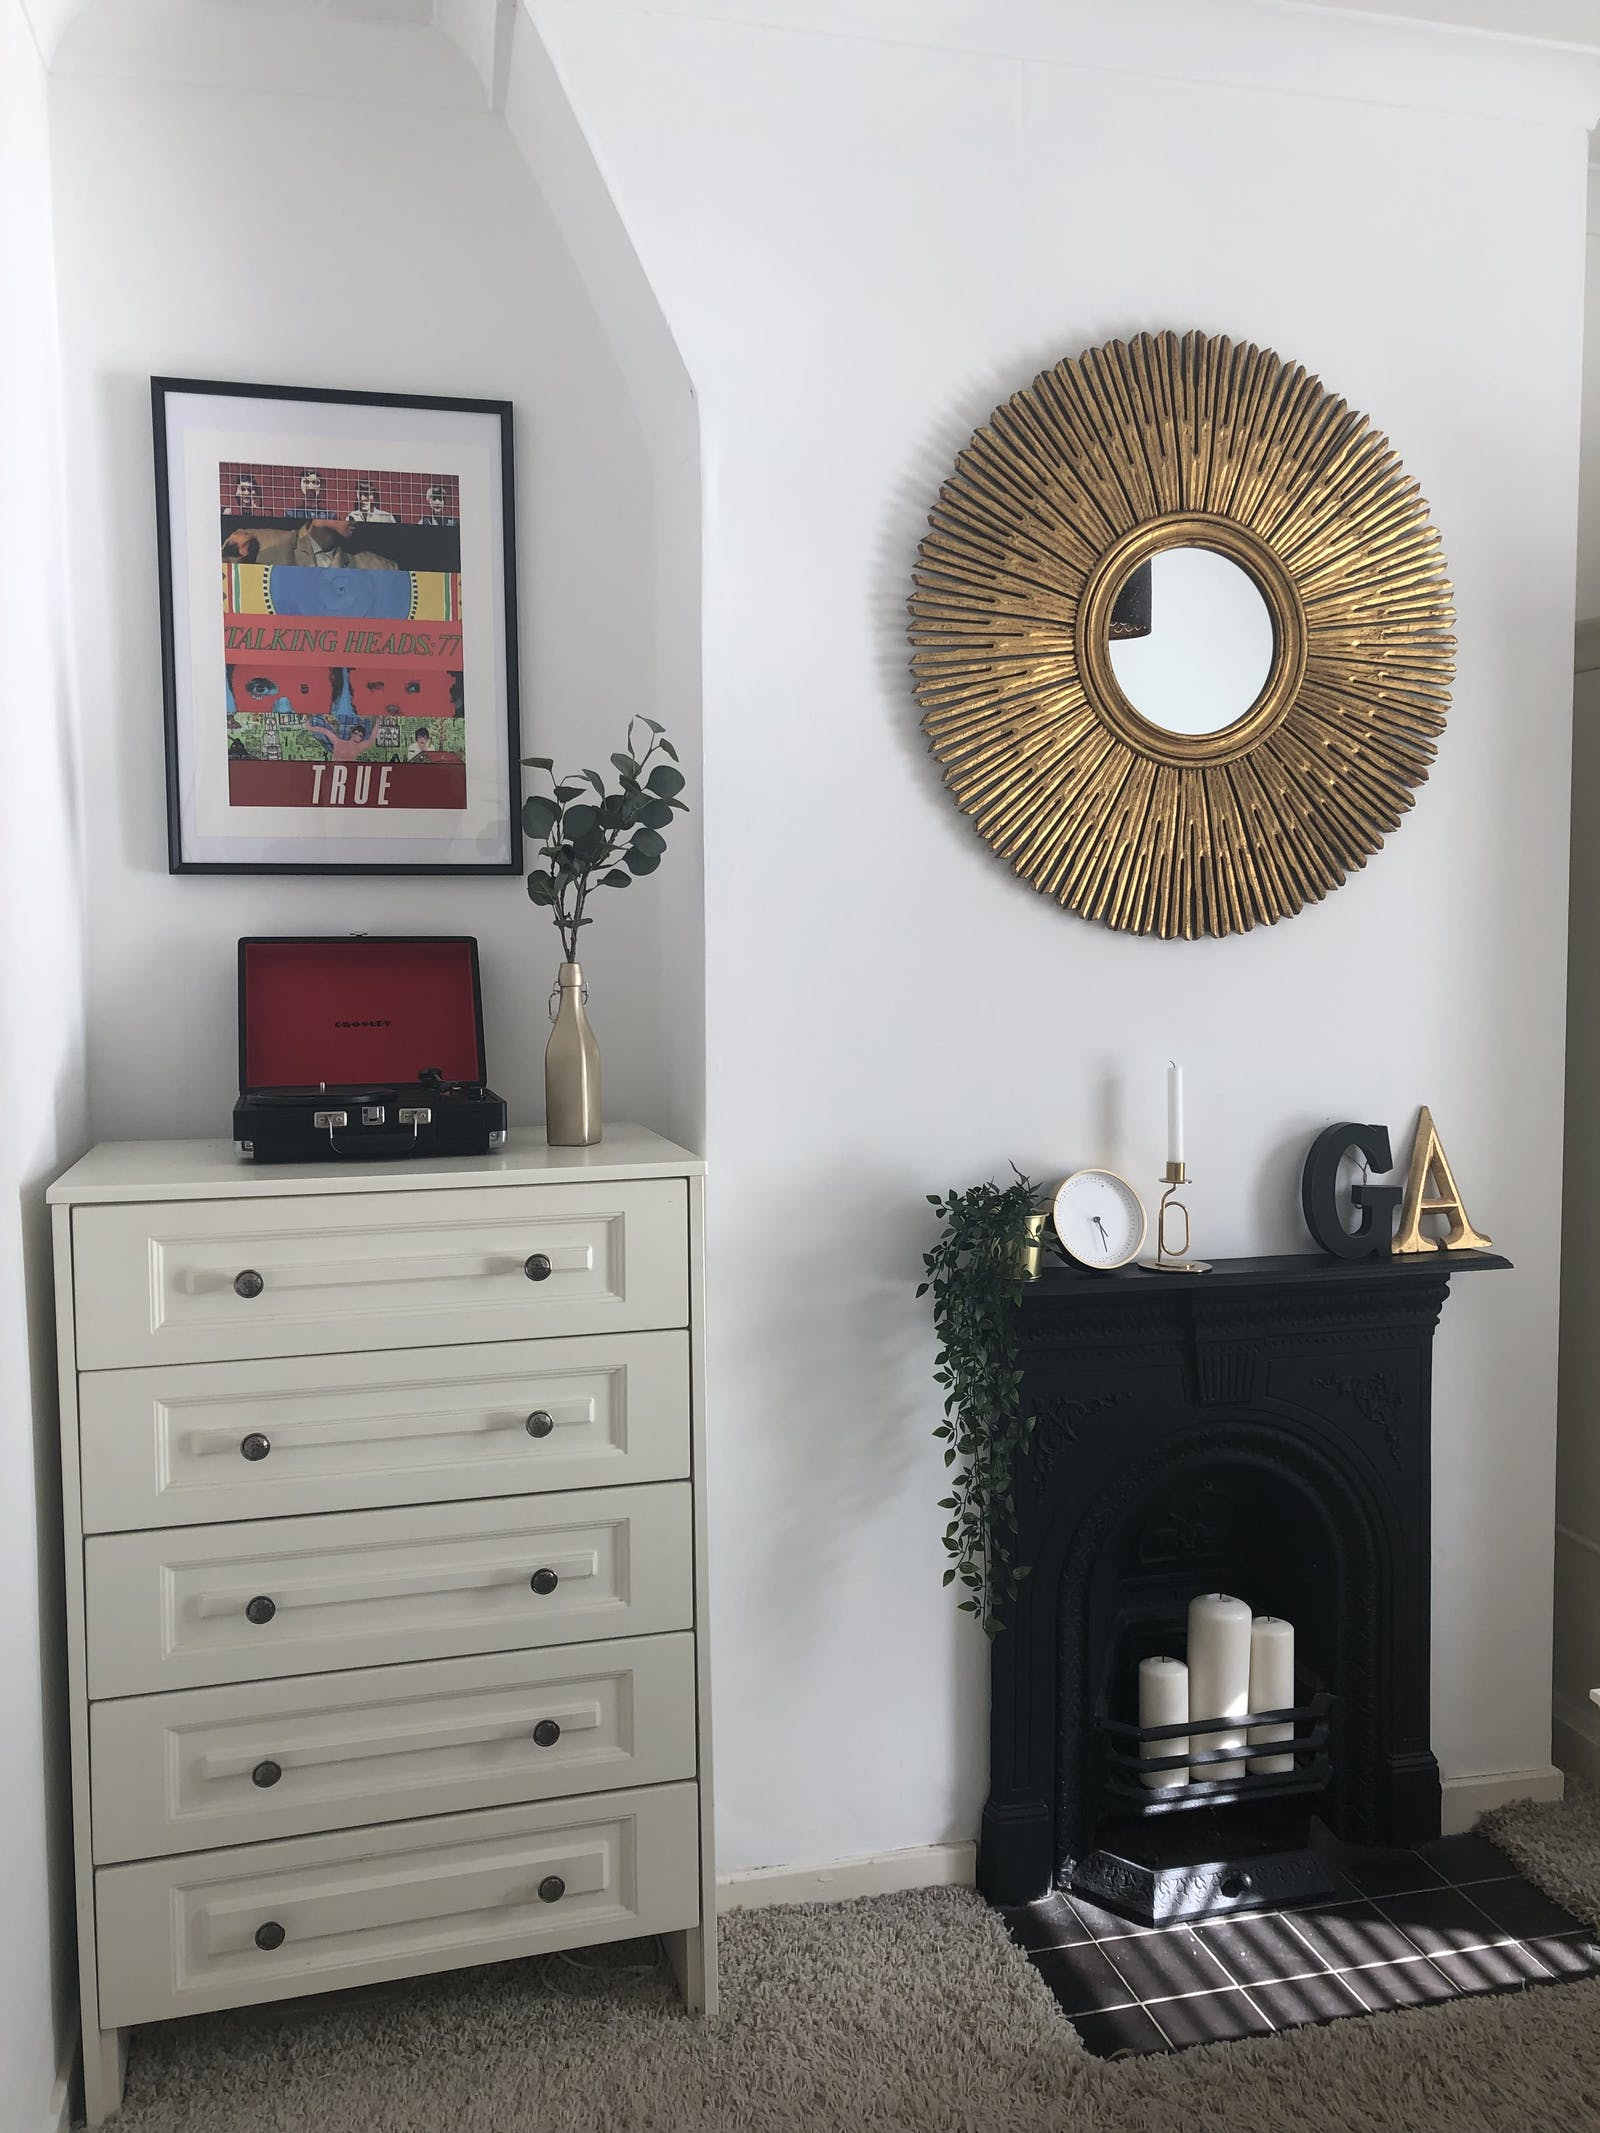 Room corner with a fireplace